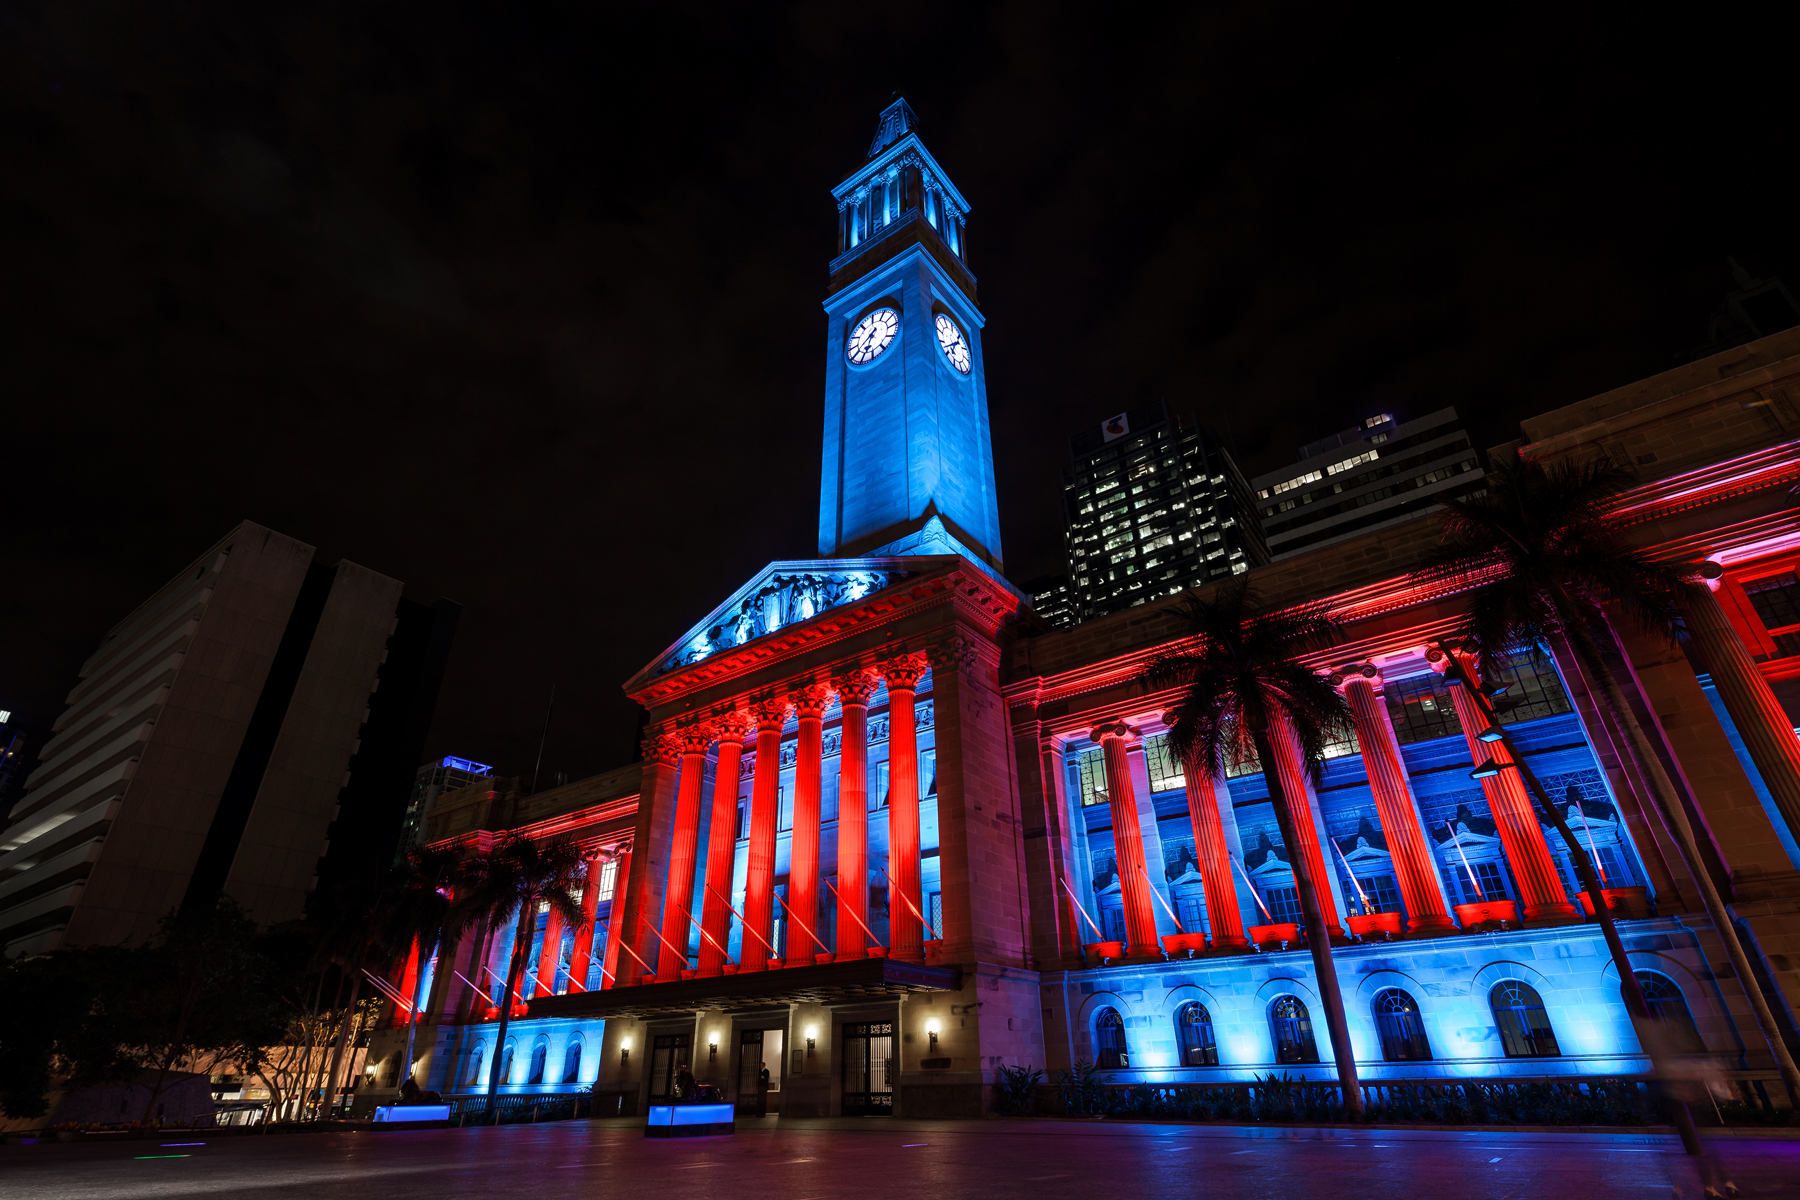 Brisbane City Hall Light Show Custom Outdoor LED Building Facade Architectural Lighting